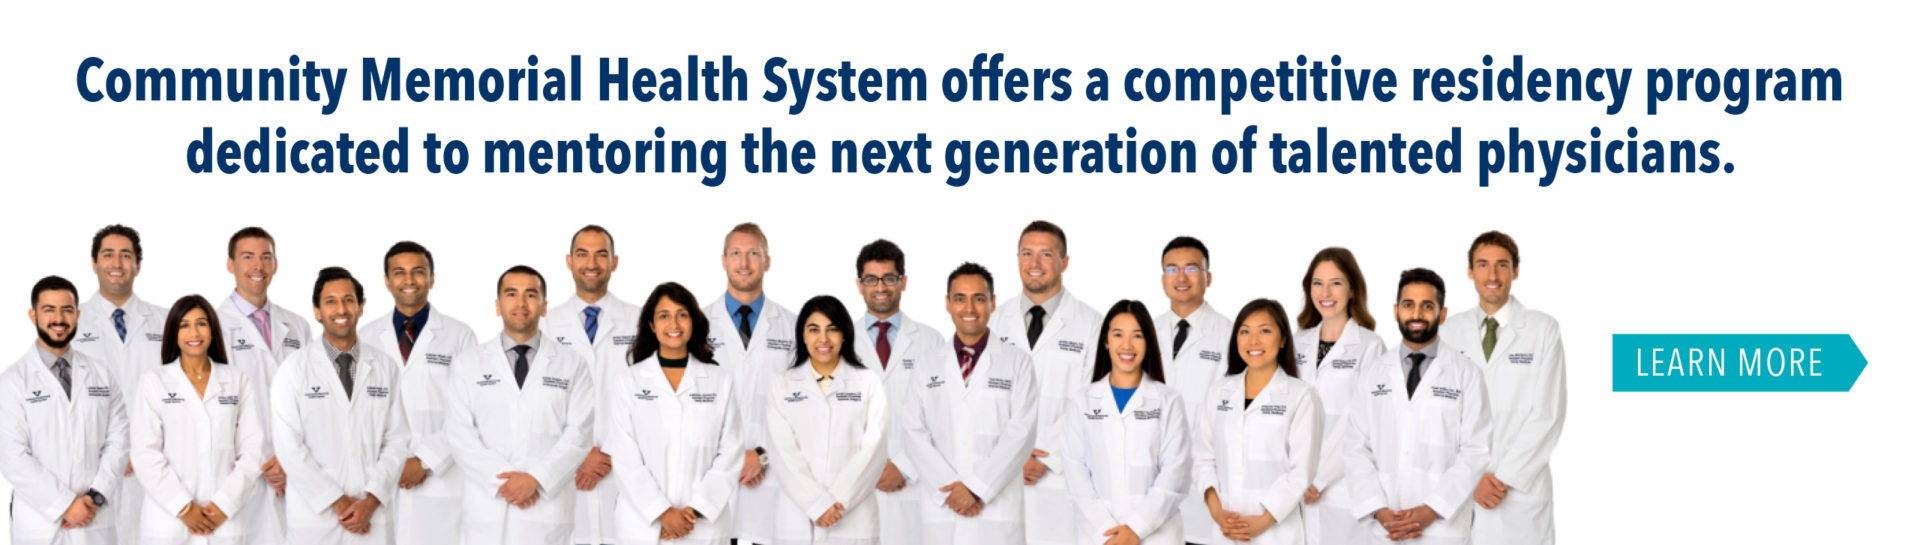 Community Memorial Health System offers a competitive residency program dedicated to mentoring the next generation of talented physicians.